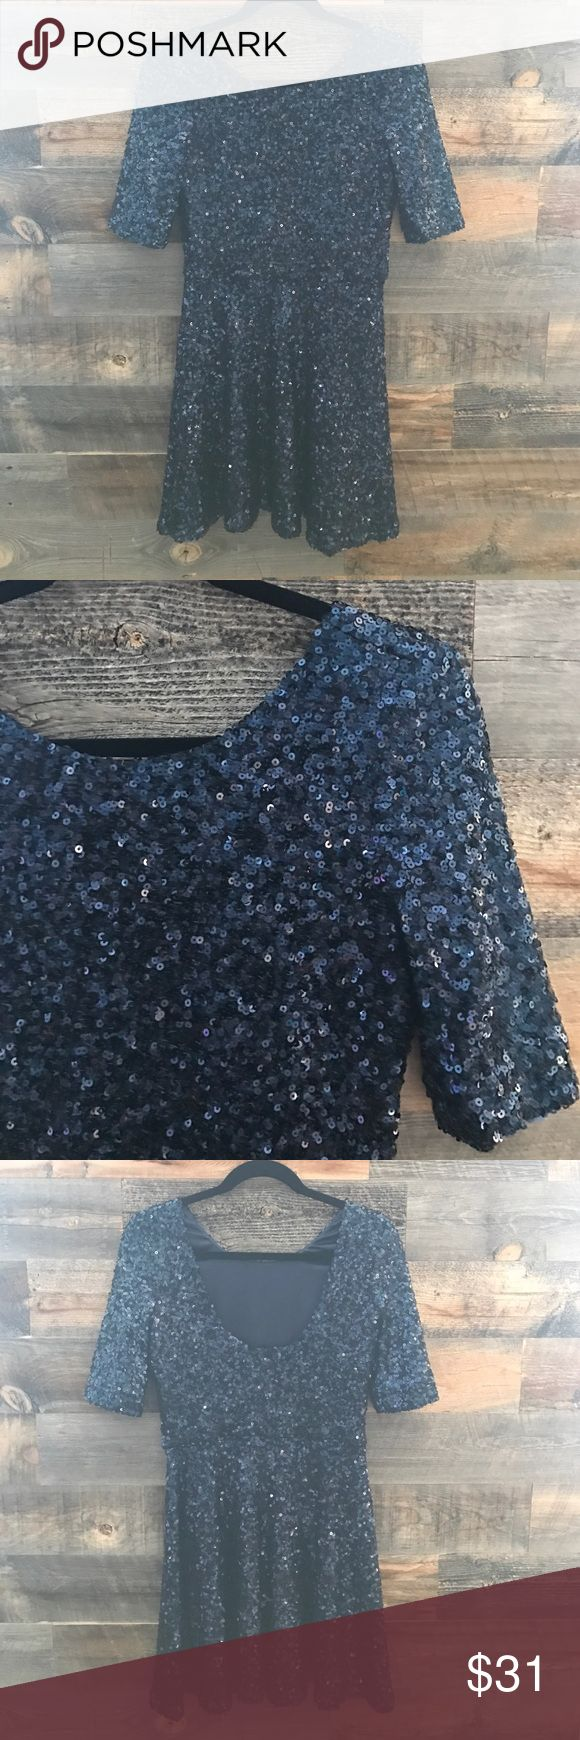 French Connection Blue Sequin Dress Fit and flare style sequined dress, very flattering. Great condition. French Connection Dresses Mini